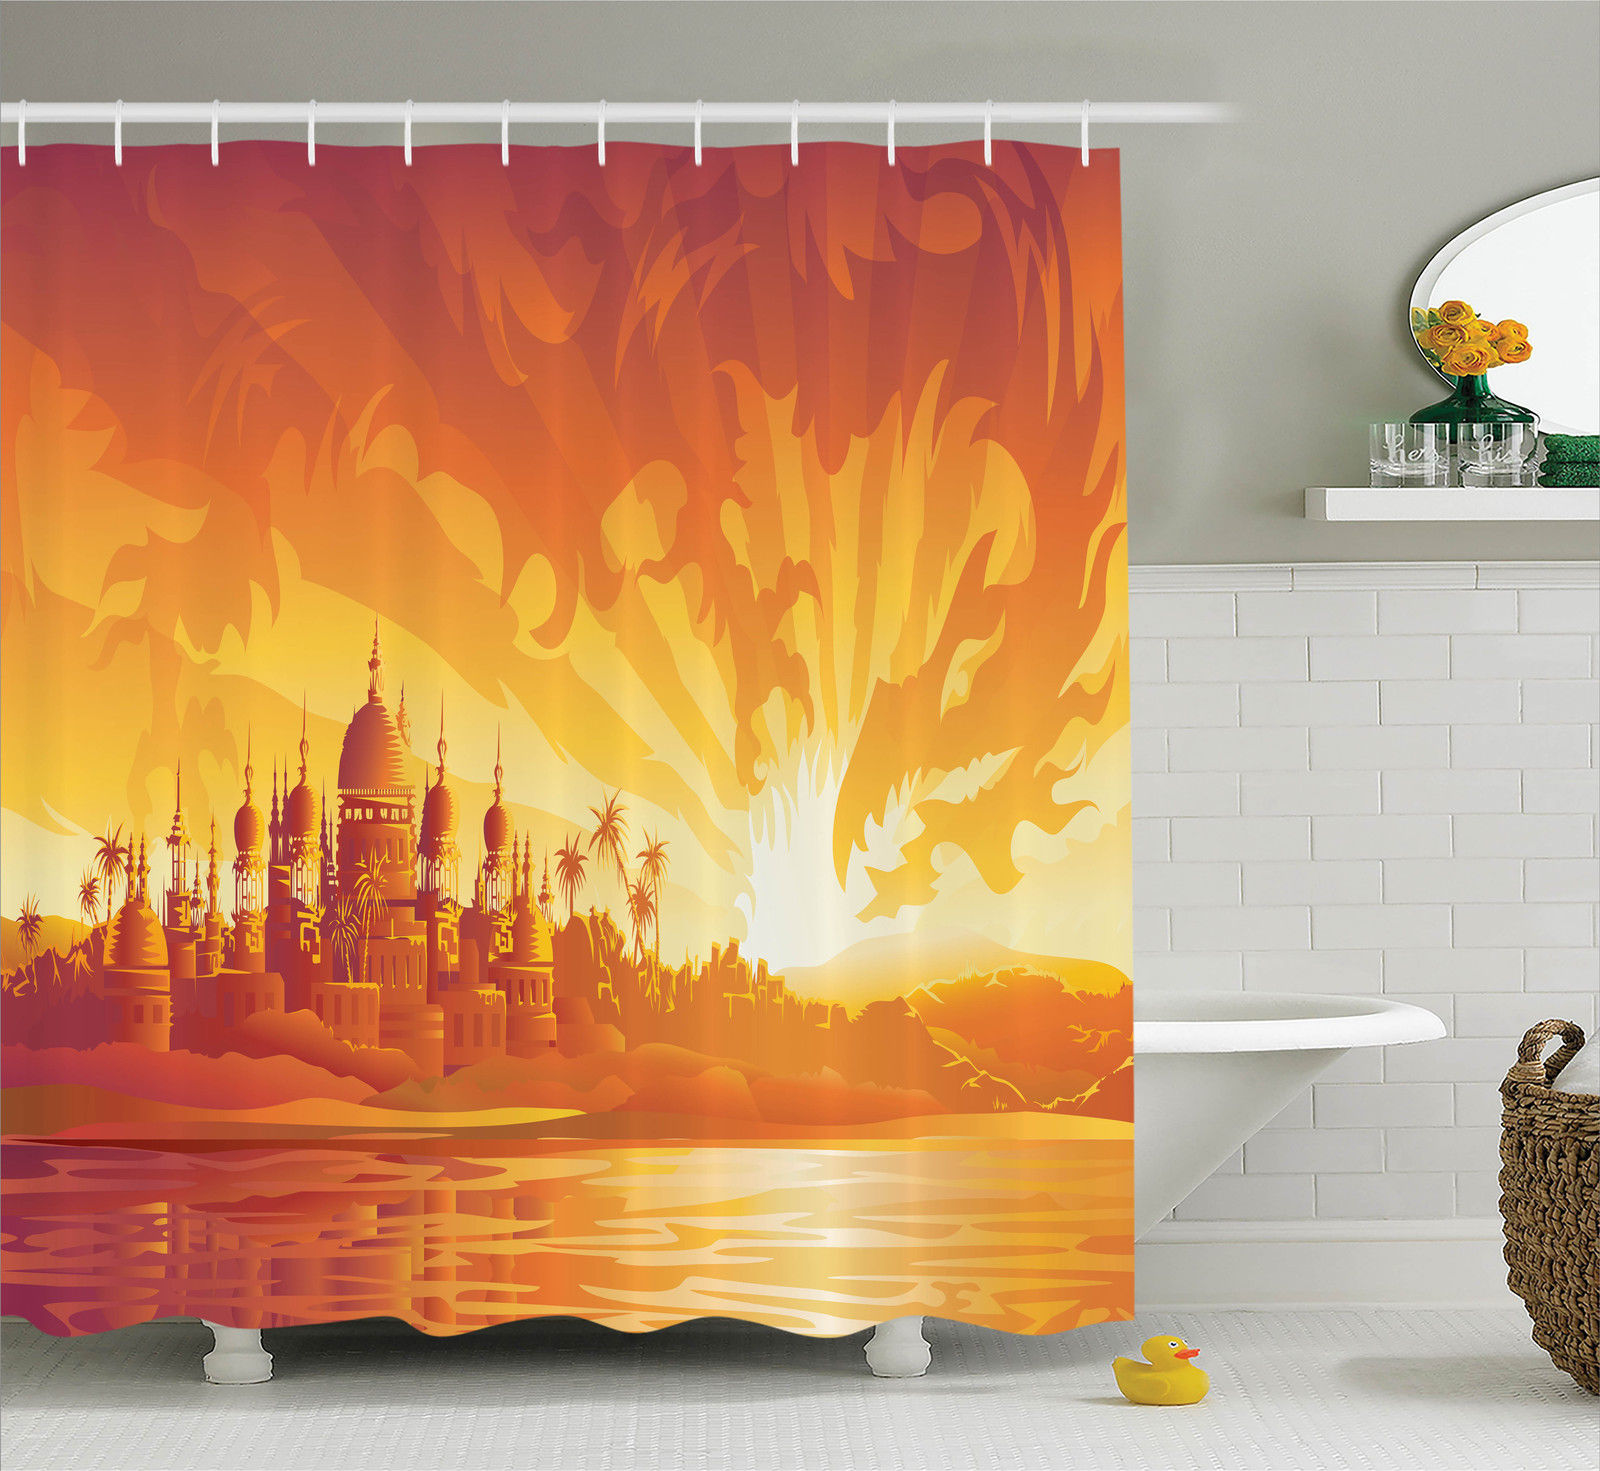 Dragon Bathroom Accessories Asian Decor Golden City Under Dragon Fire Sky Palace